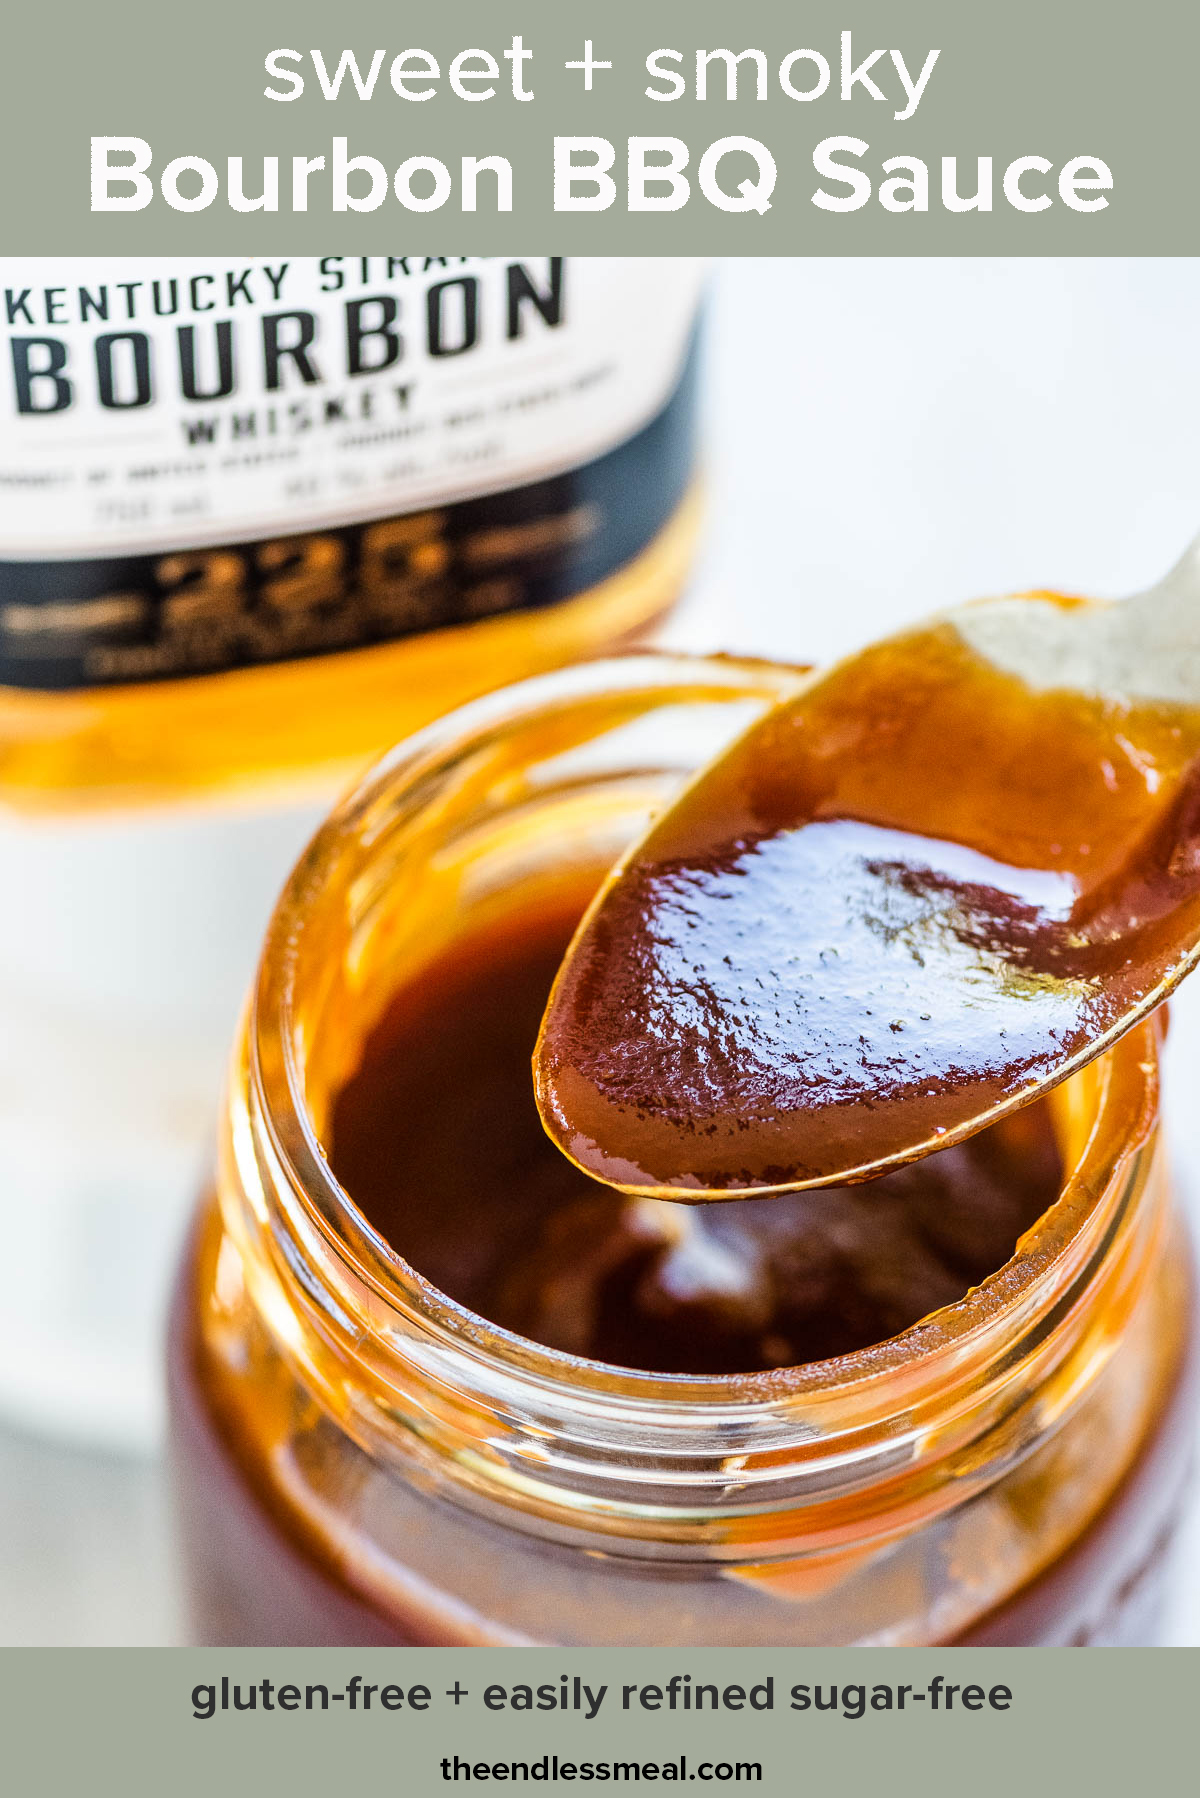 A jar of bourbon bbq sauce with a bottle of bourbon in the background and the recipe title on top of the picture.